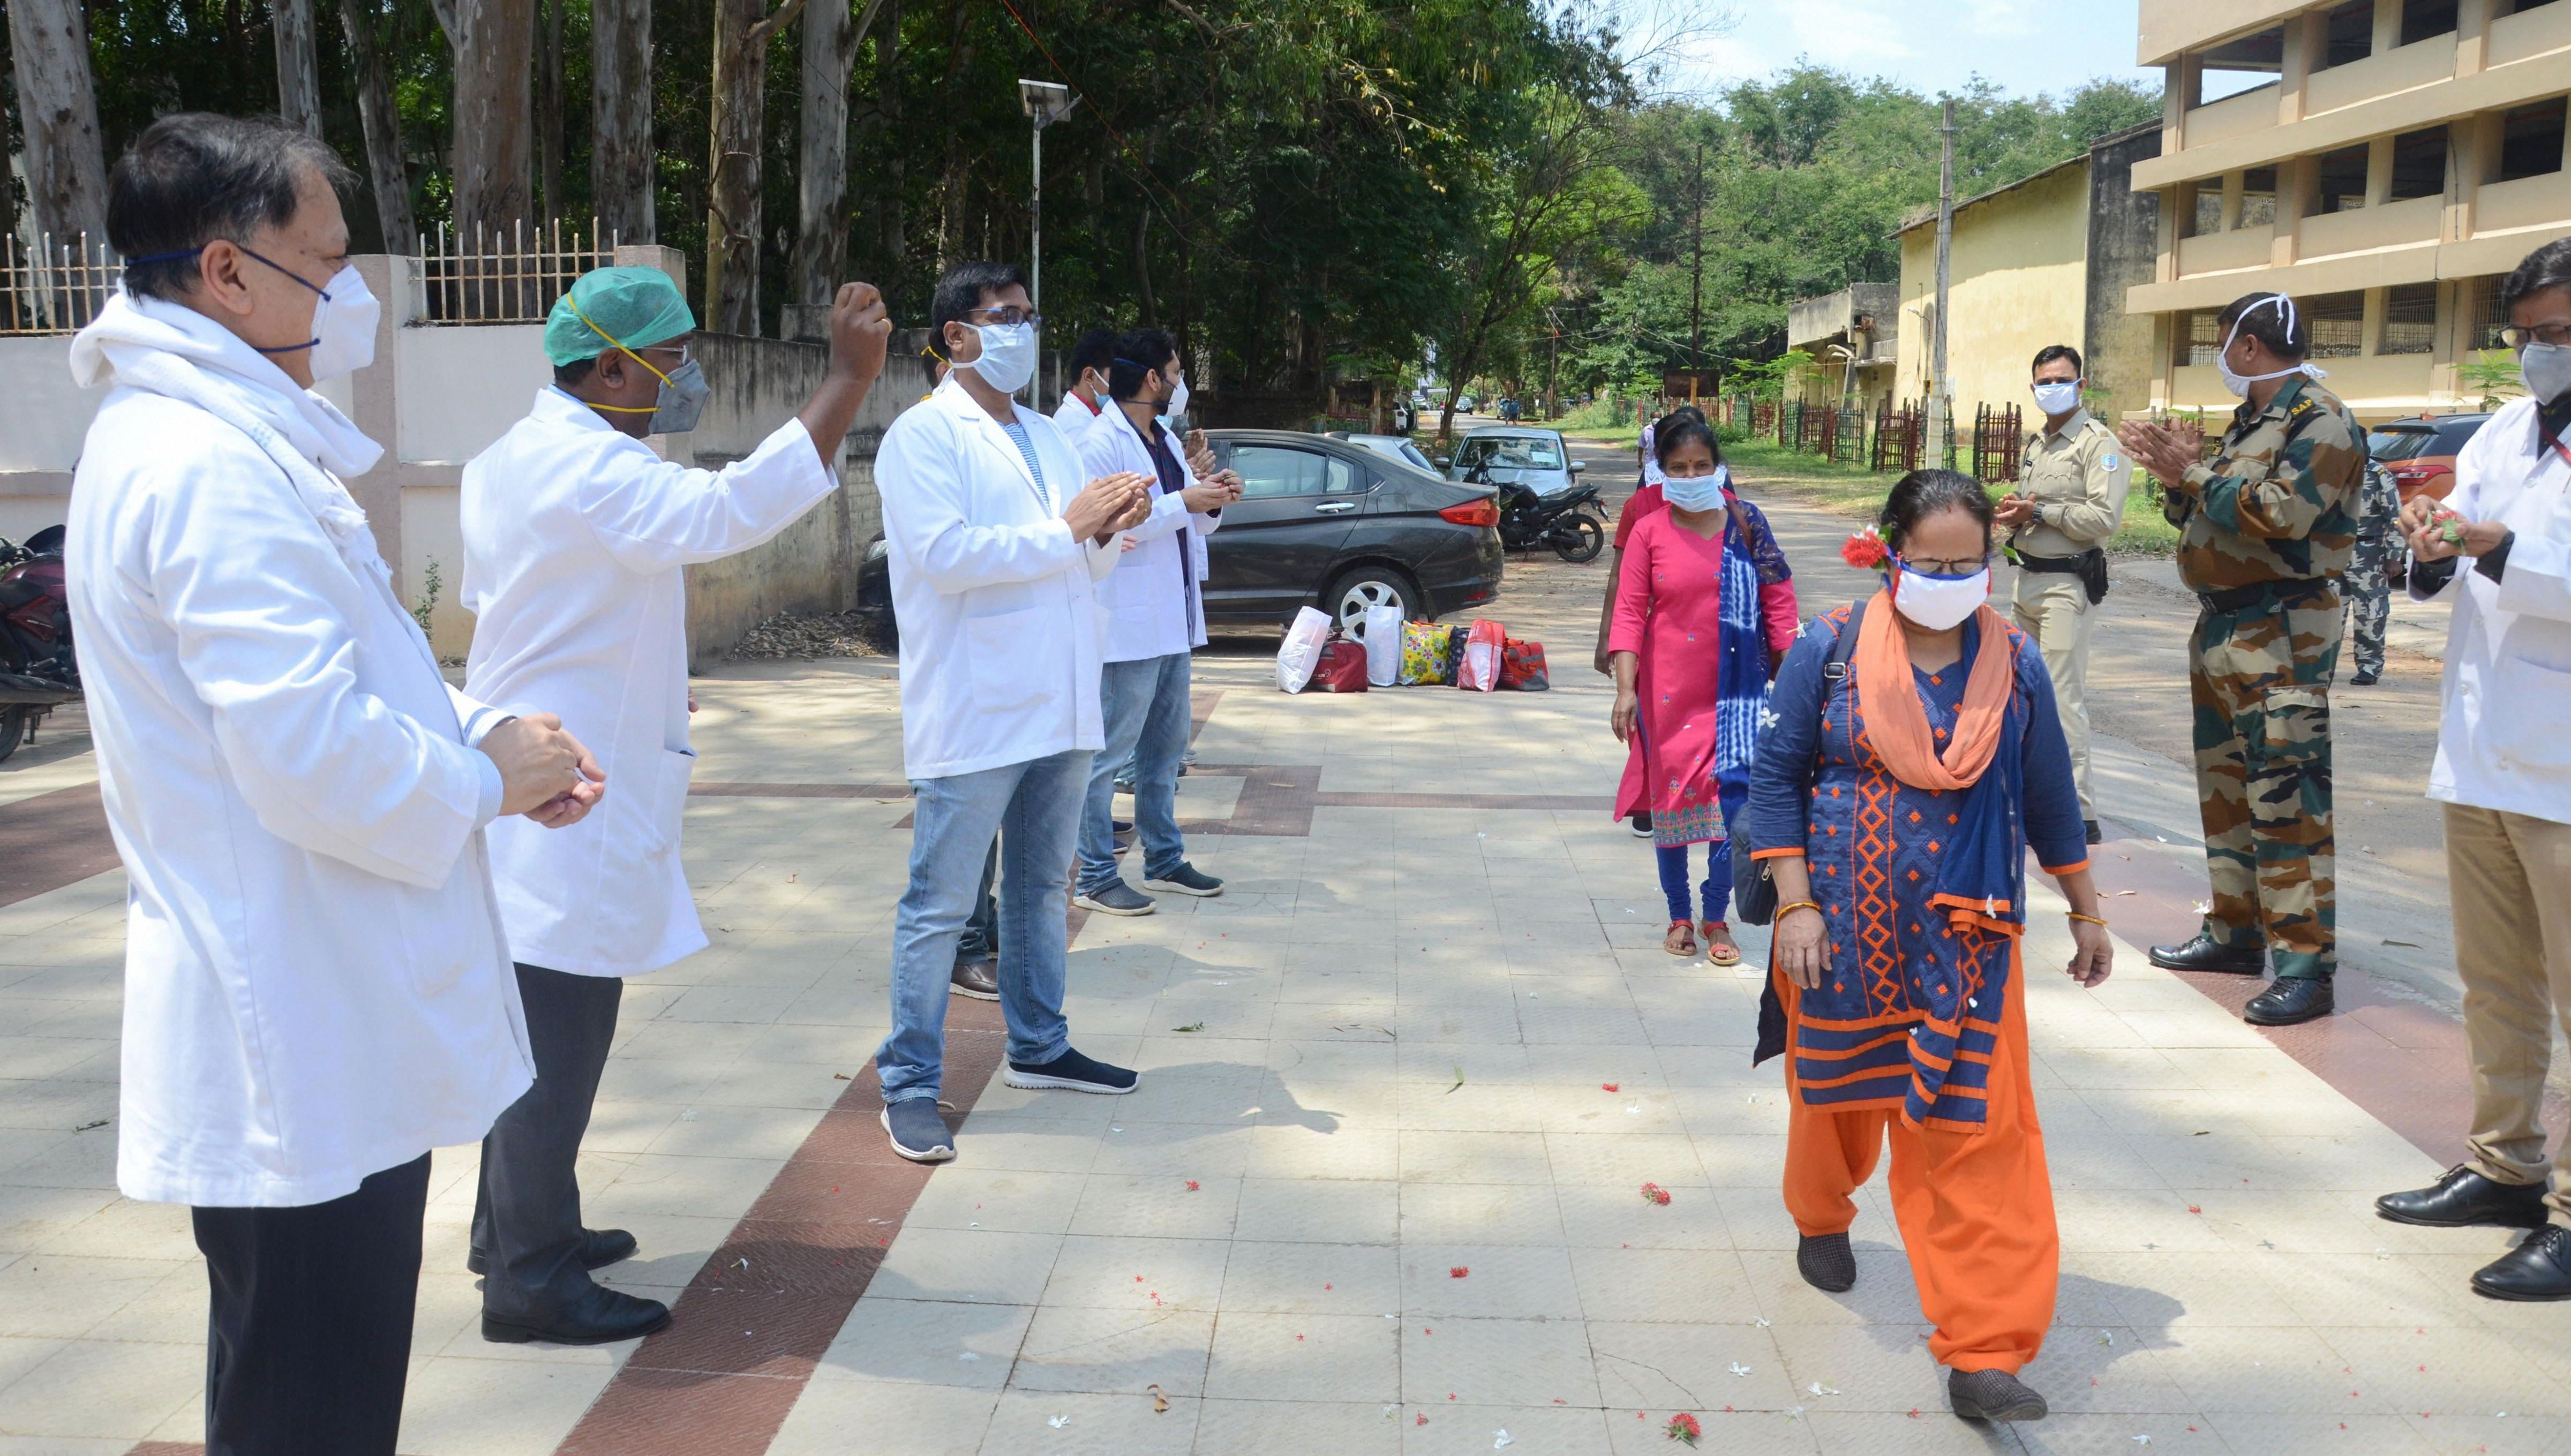 Senior doctors of Rajendra Institute of Medical Sciences (RIMS) applaud for junior doctors who completed their quarantine period, during a nationwide lockdown in the wake of coronavirus pandemic, at Hindpiri area in Ranchi, Wednesday, April 22, 2020.